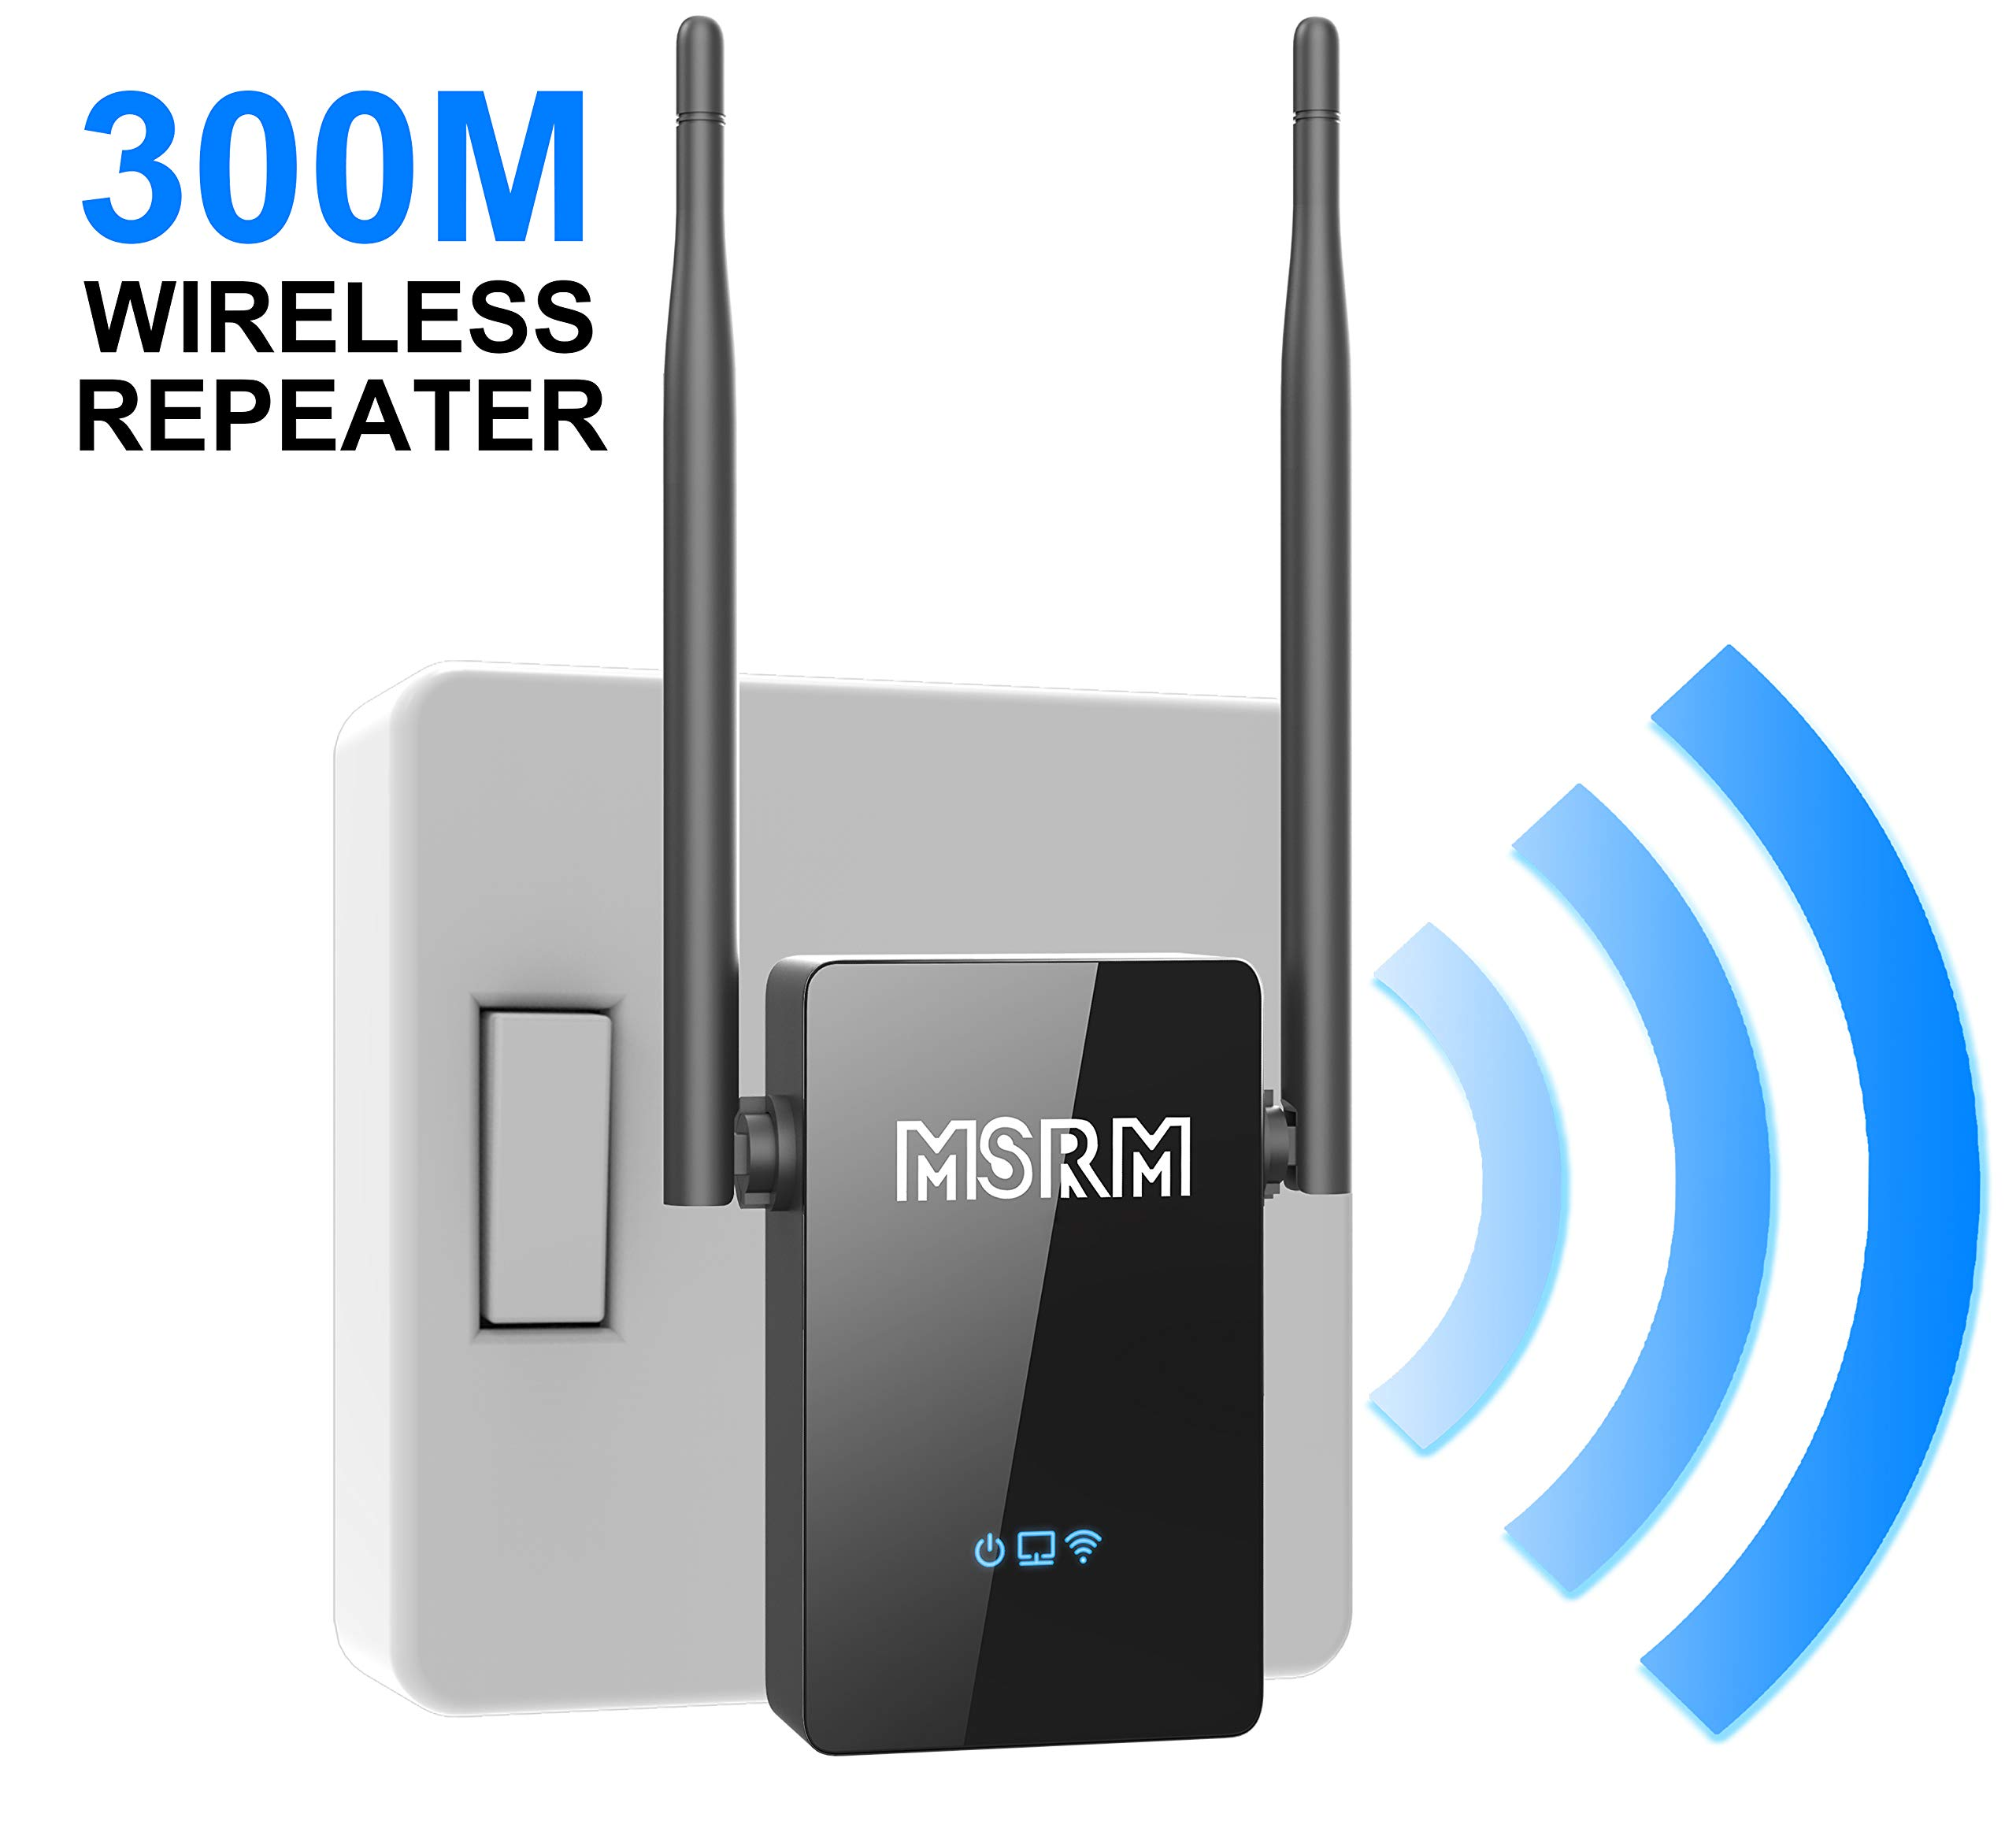 MSRM US302 Wireless-N 300Mbps Extender WiFi Repeater Signal Booster 802.11n/b/g Network with Ethernet Cable by MSRM